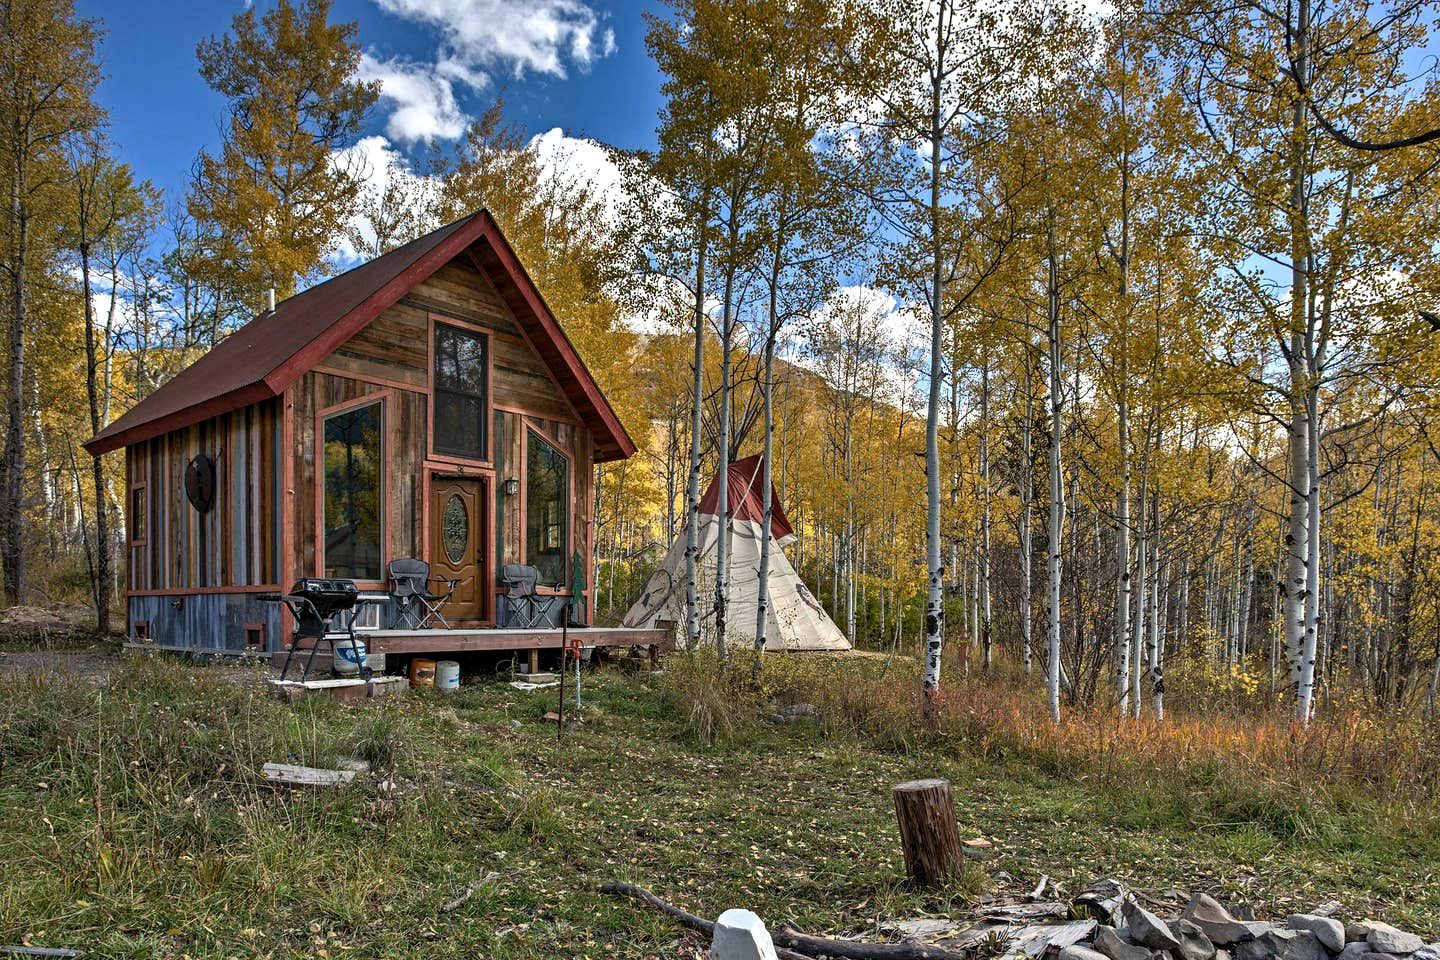 Glenwood Springs Cabins (Marble, Colorado, United States)